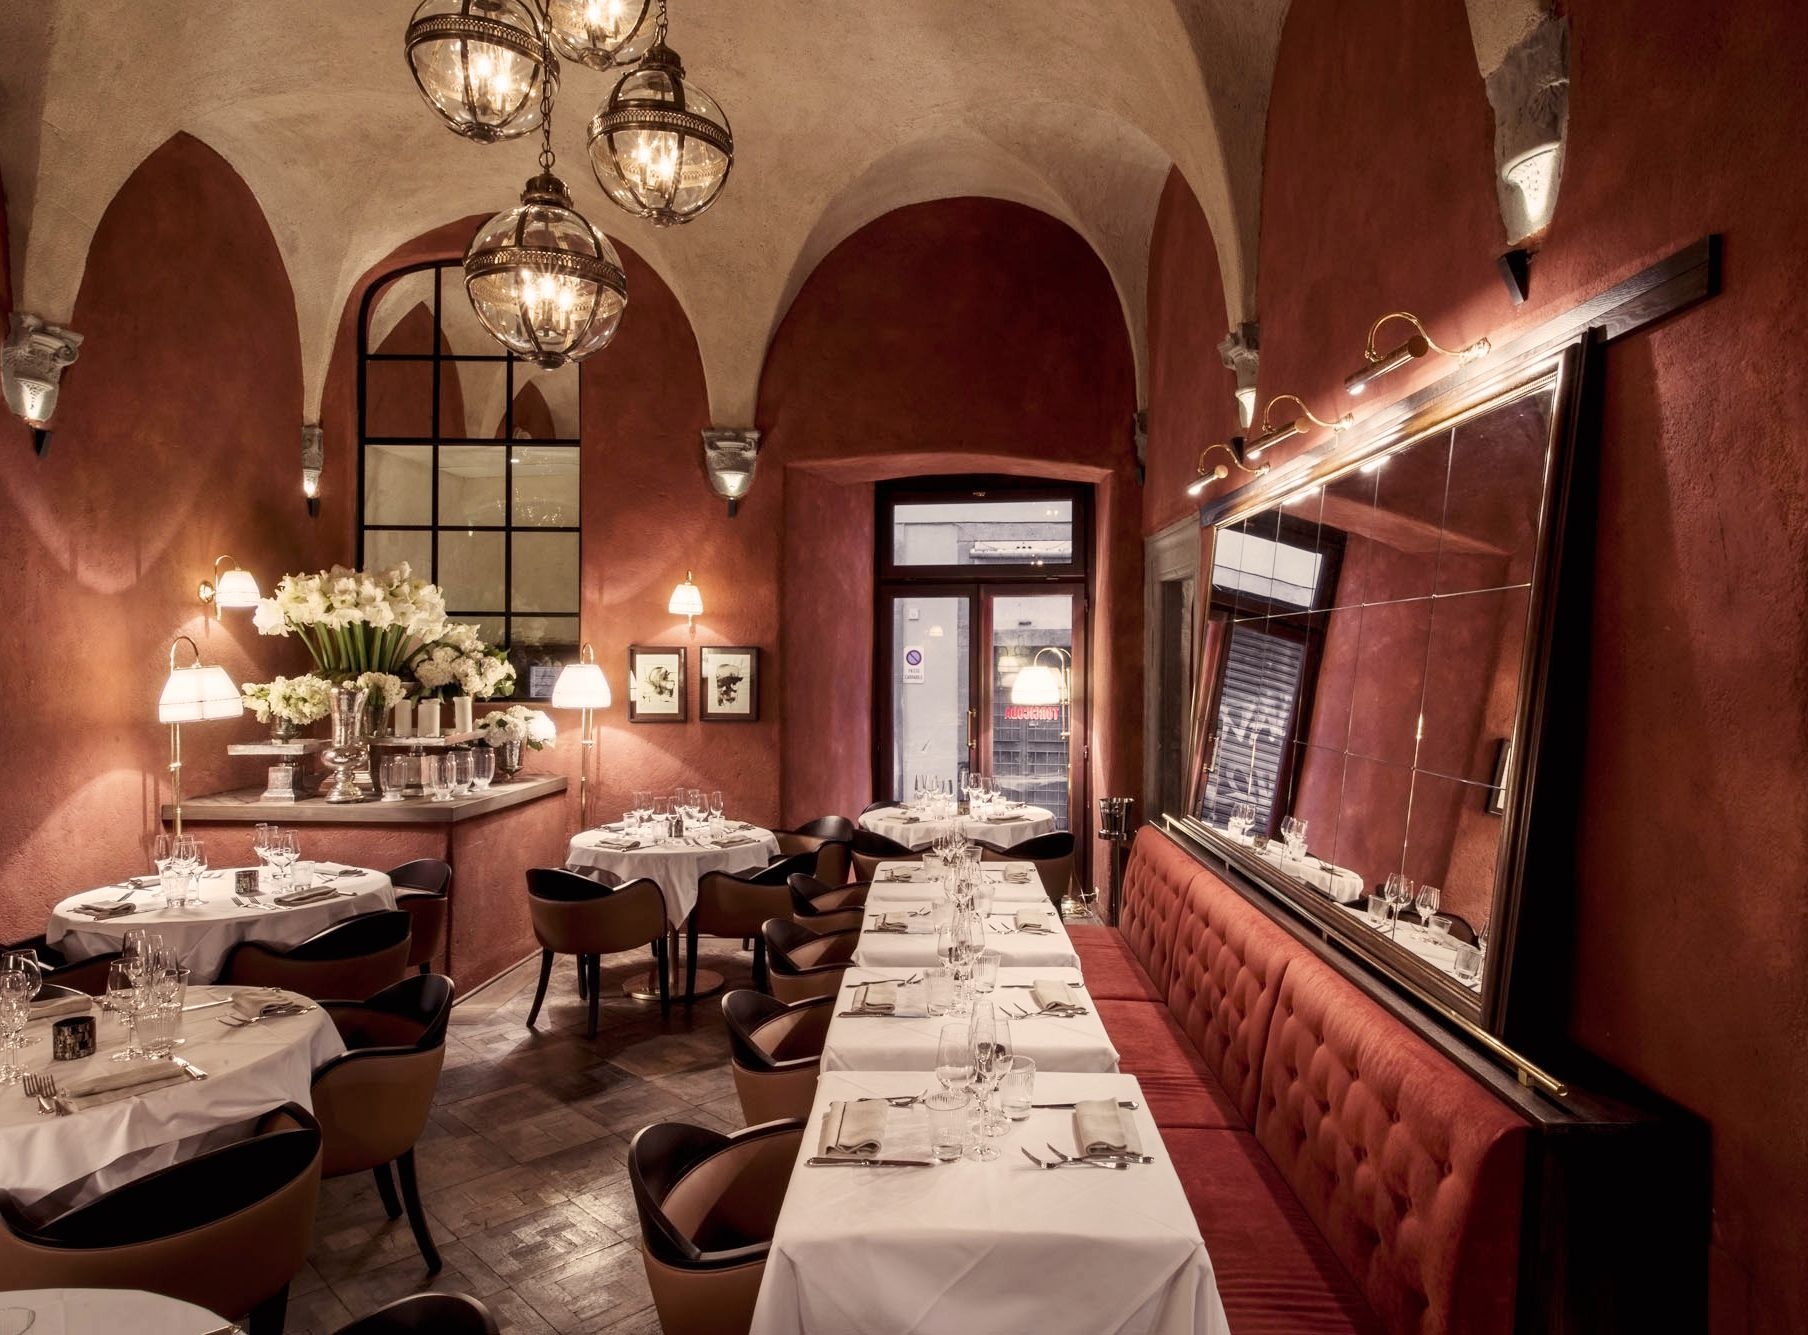 Cool club and restaurant in Florence Colle Bereto project by Luigi Fragola Architects Lui ragola designrestaurant club Tablesetting